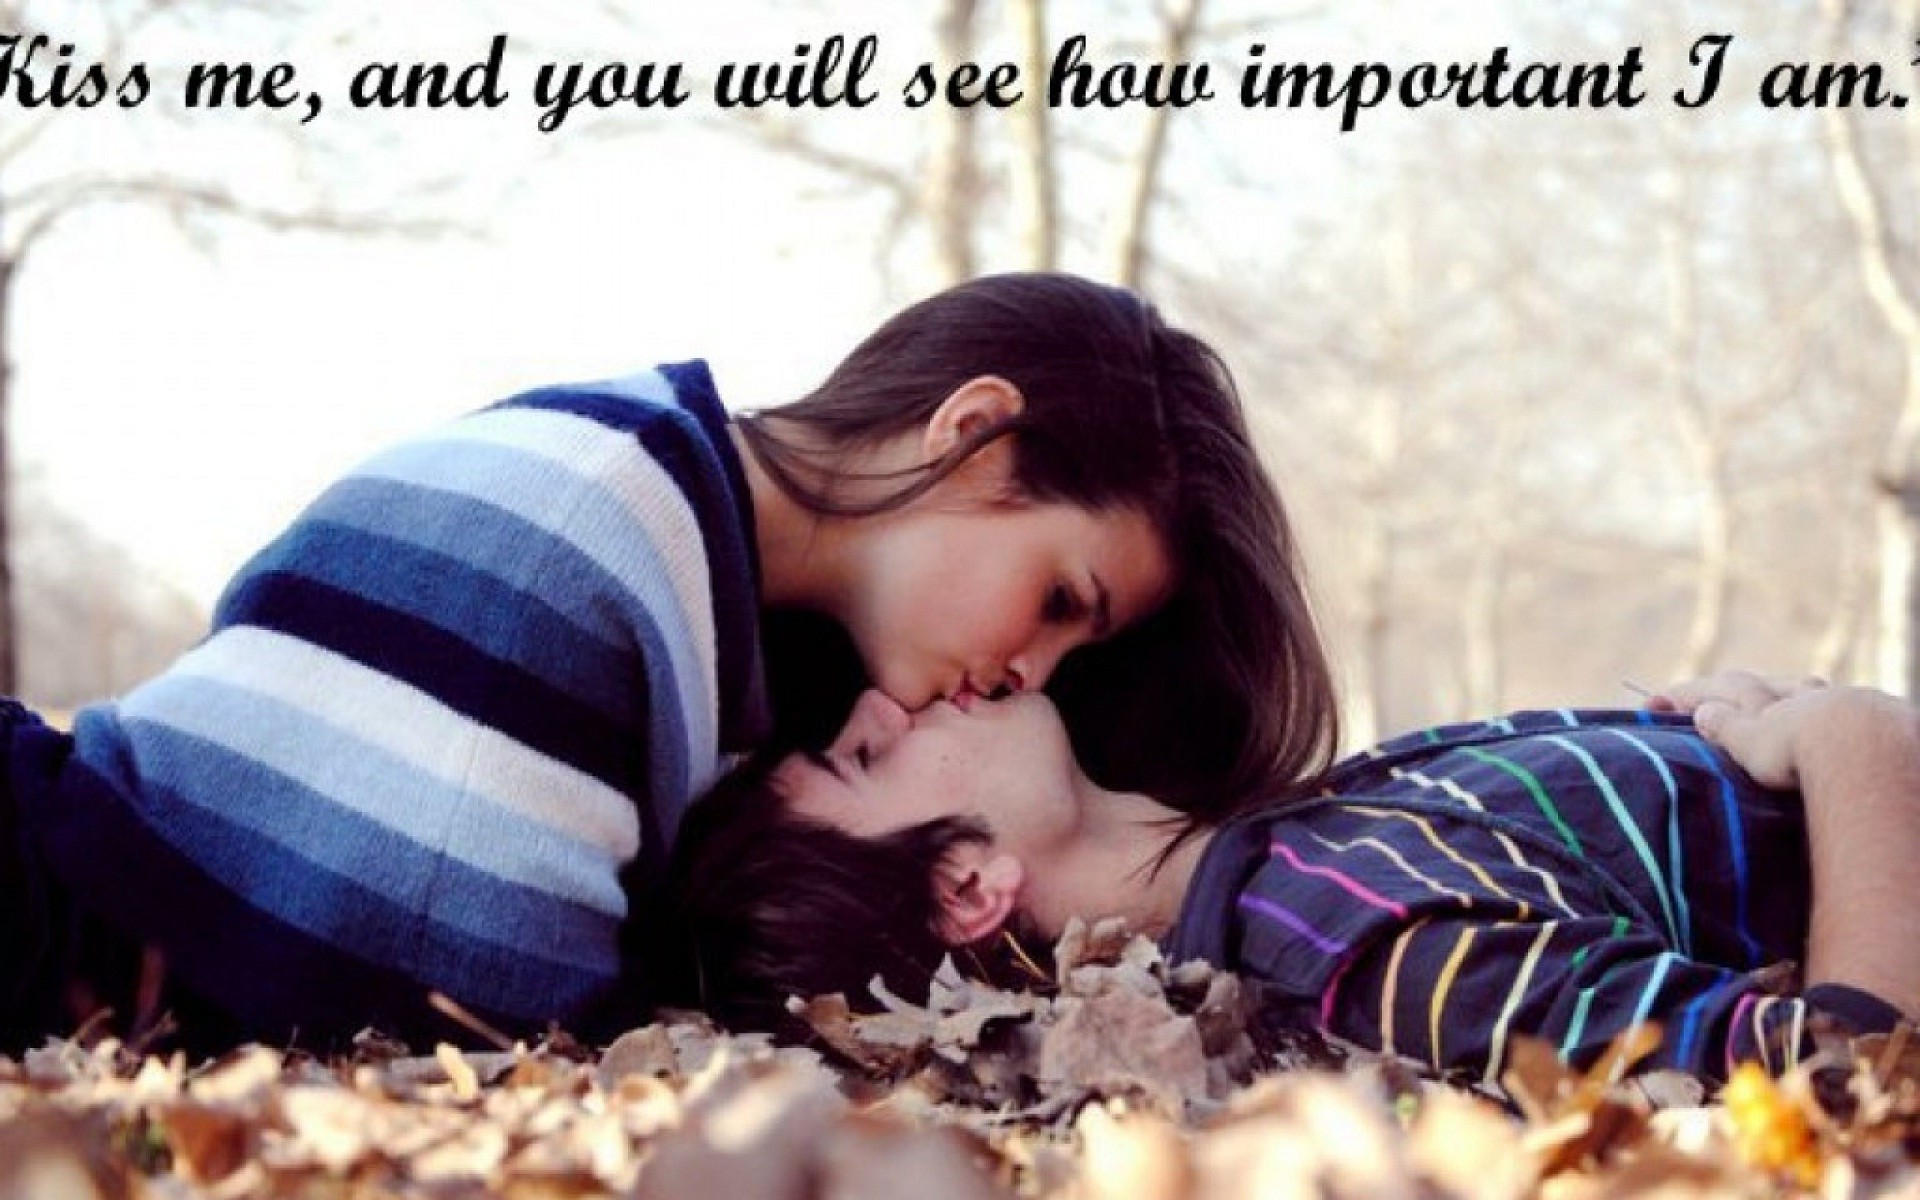 1920x1200 kissing images kissing images kissing images ...